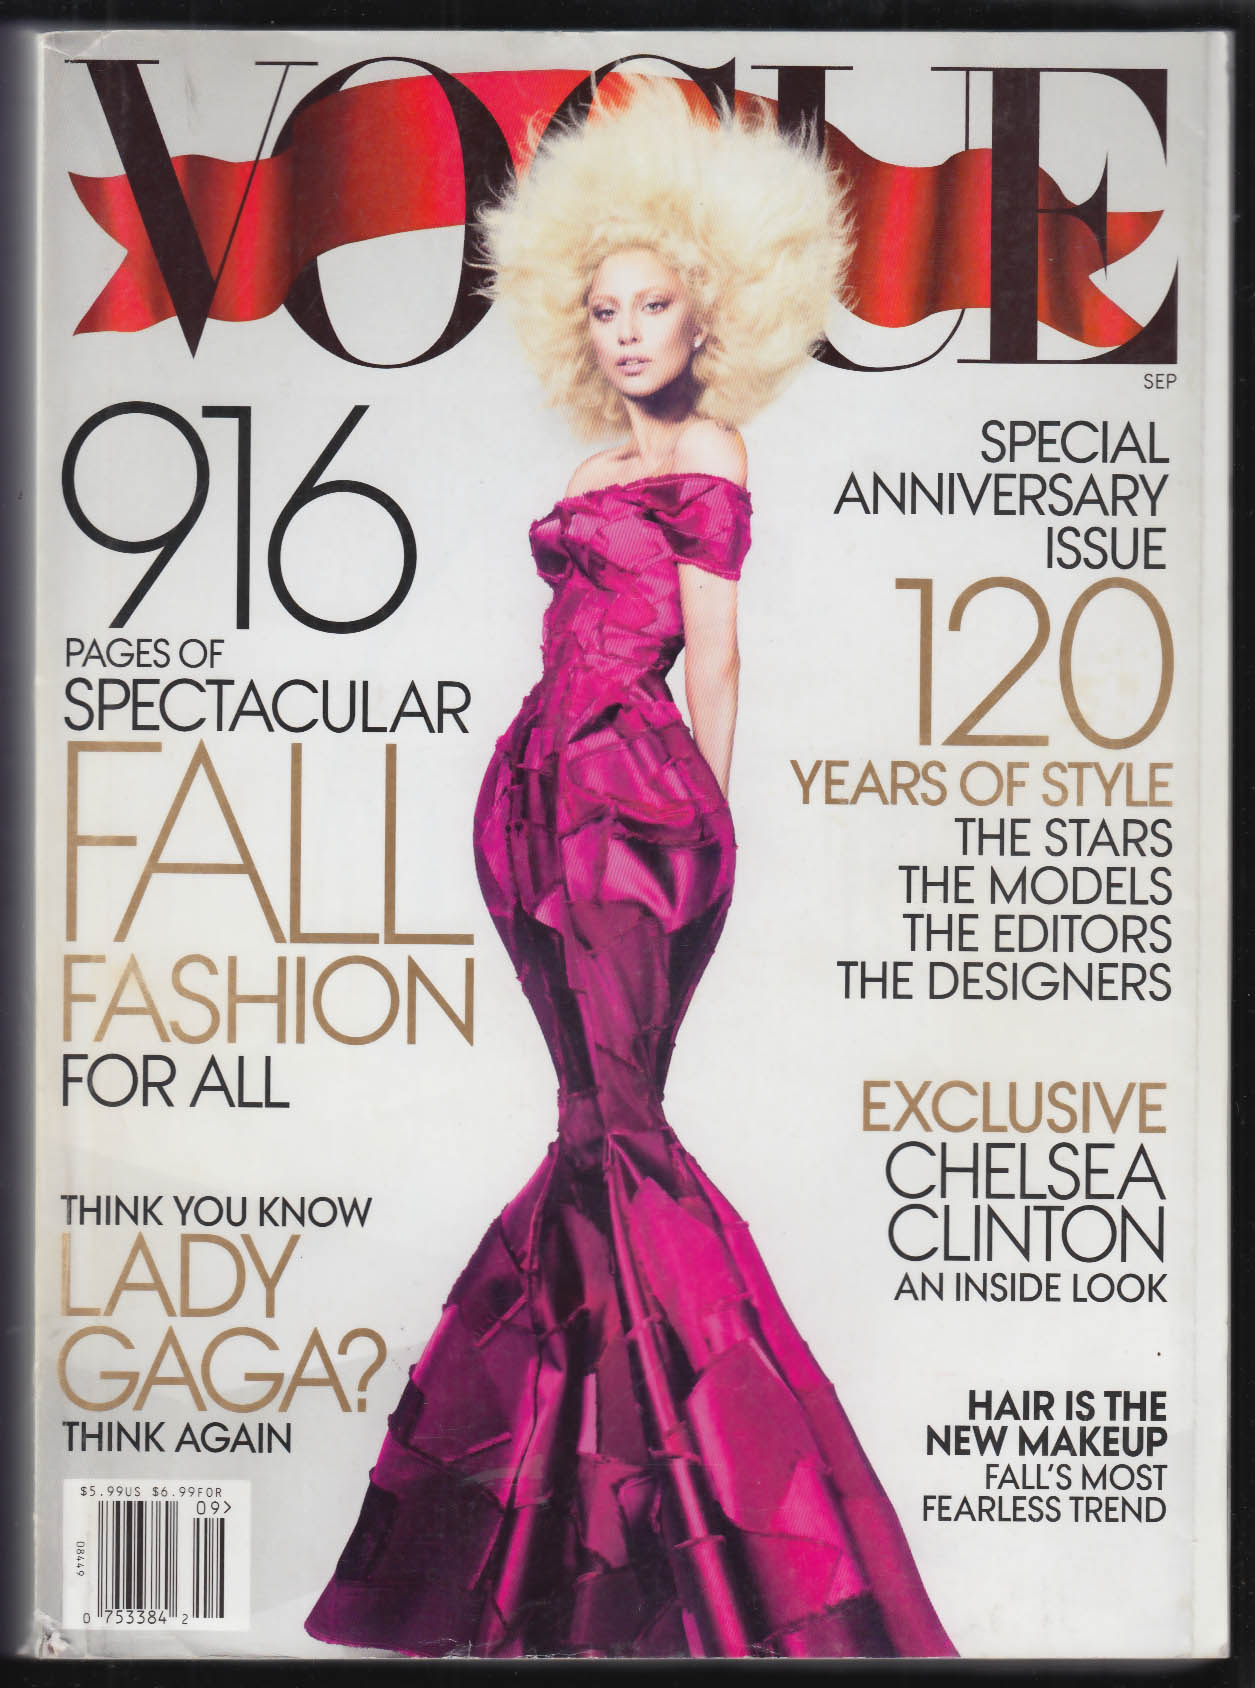 VOGUE Lady Gaga Chelsea Clinton Blake Lively St Vincent + 9 2012